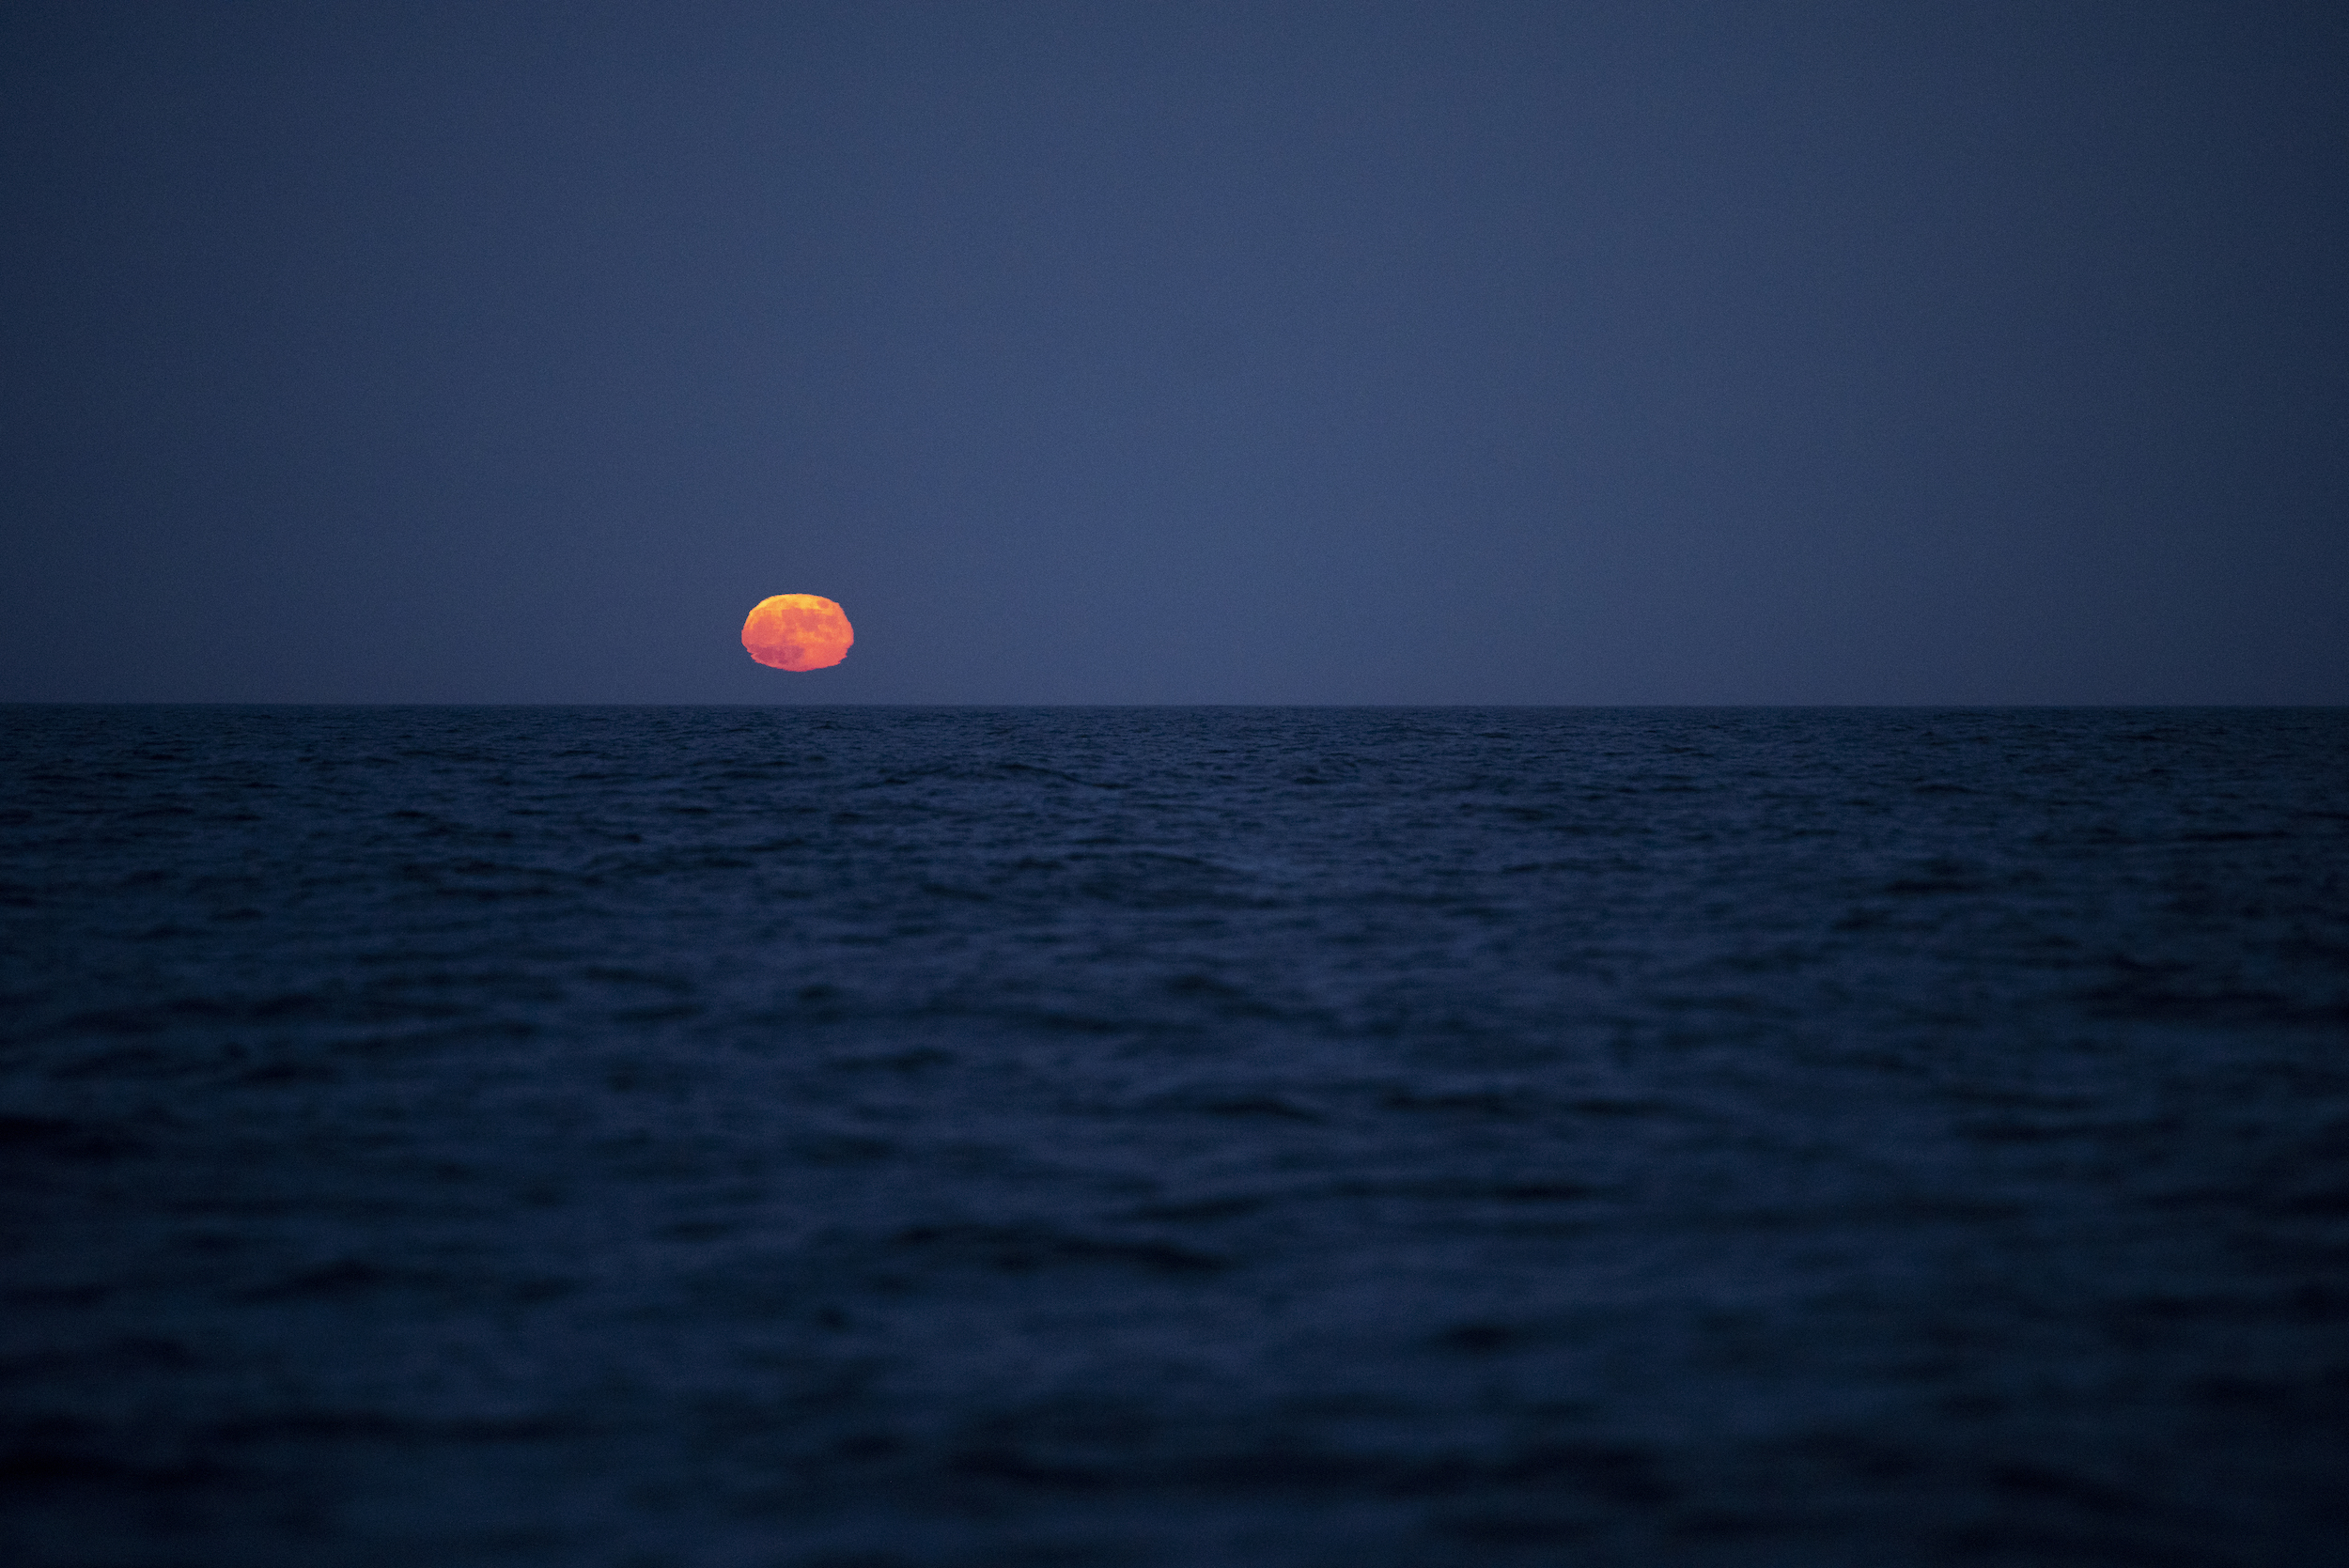 Red moonrise at sea, the refraction in the atmosphere creating an eerie mirage on the horizon.